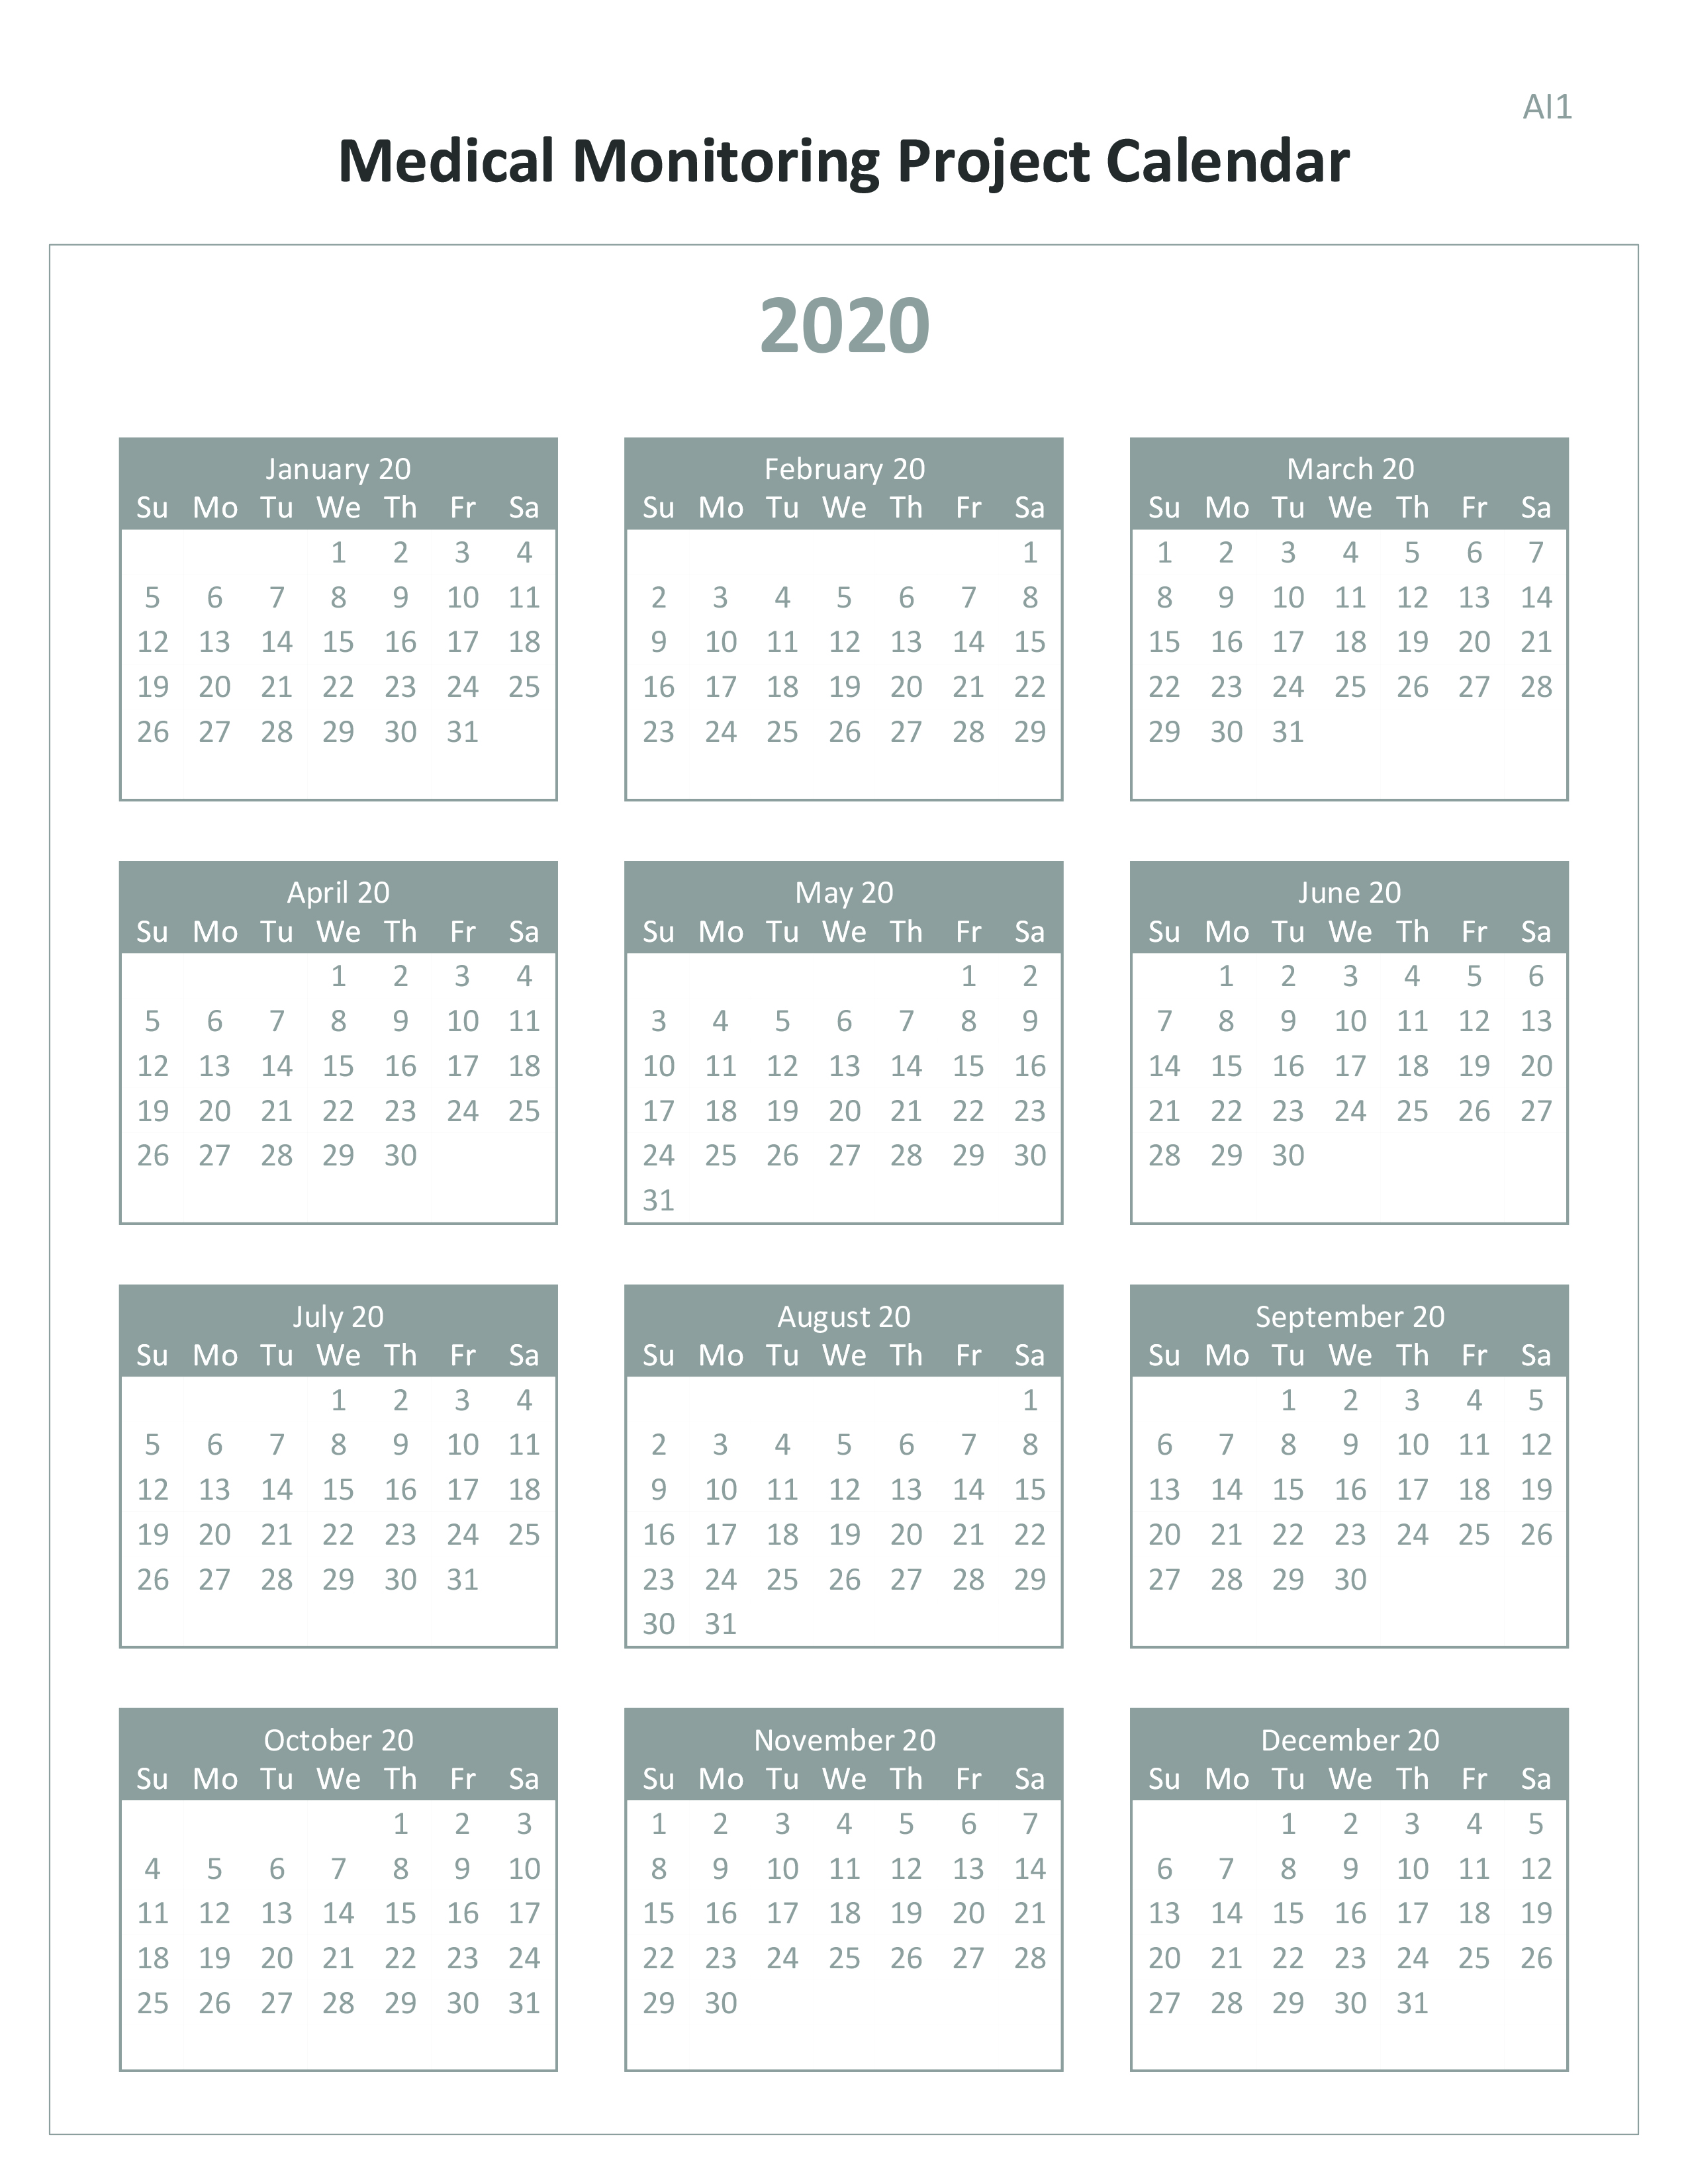 2019 Medical Monitoring Project (MMP) Calendar